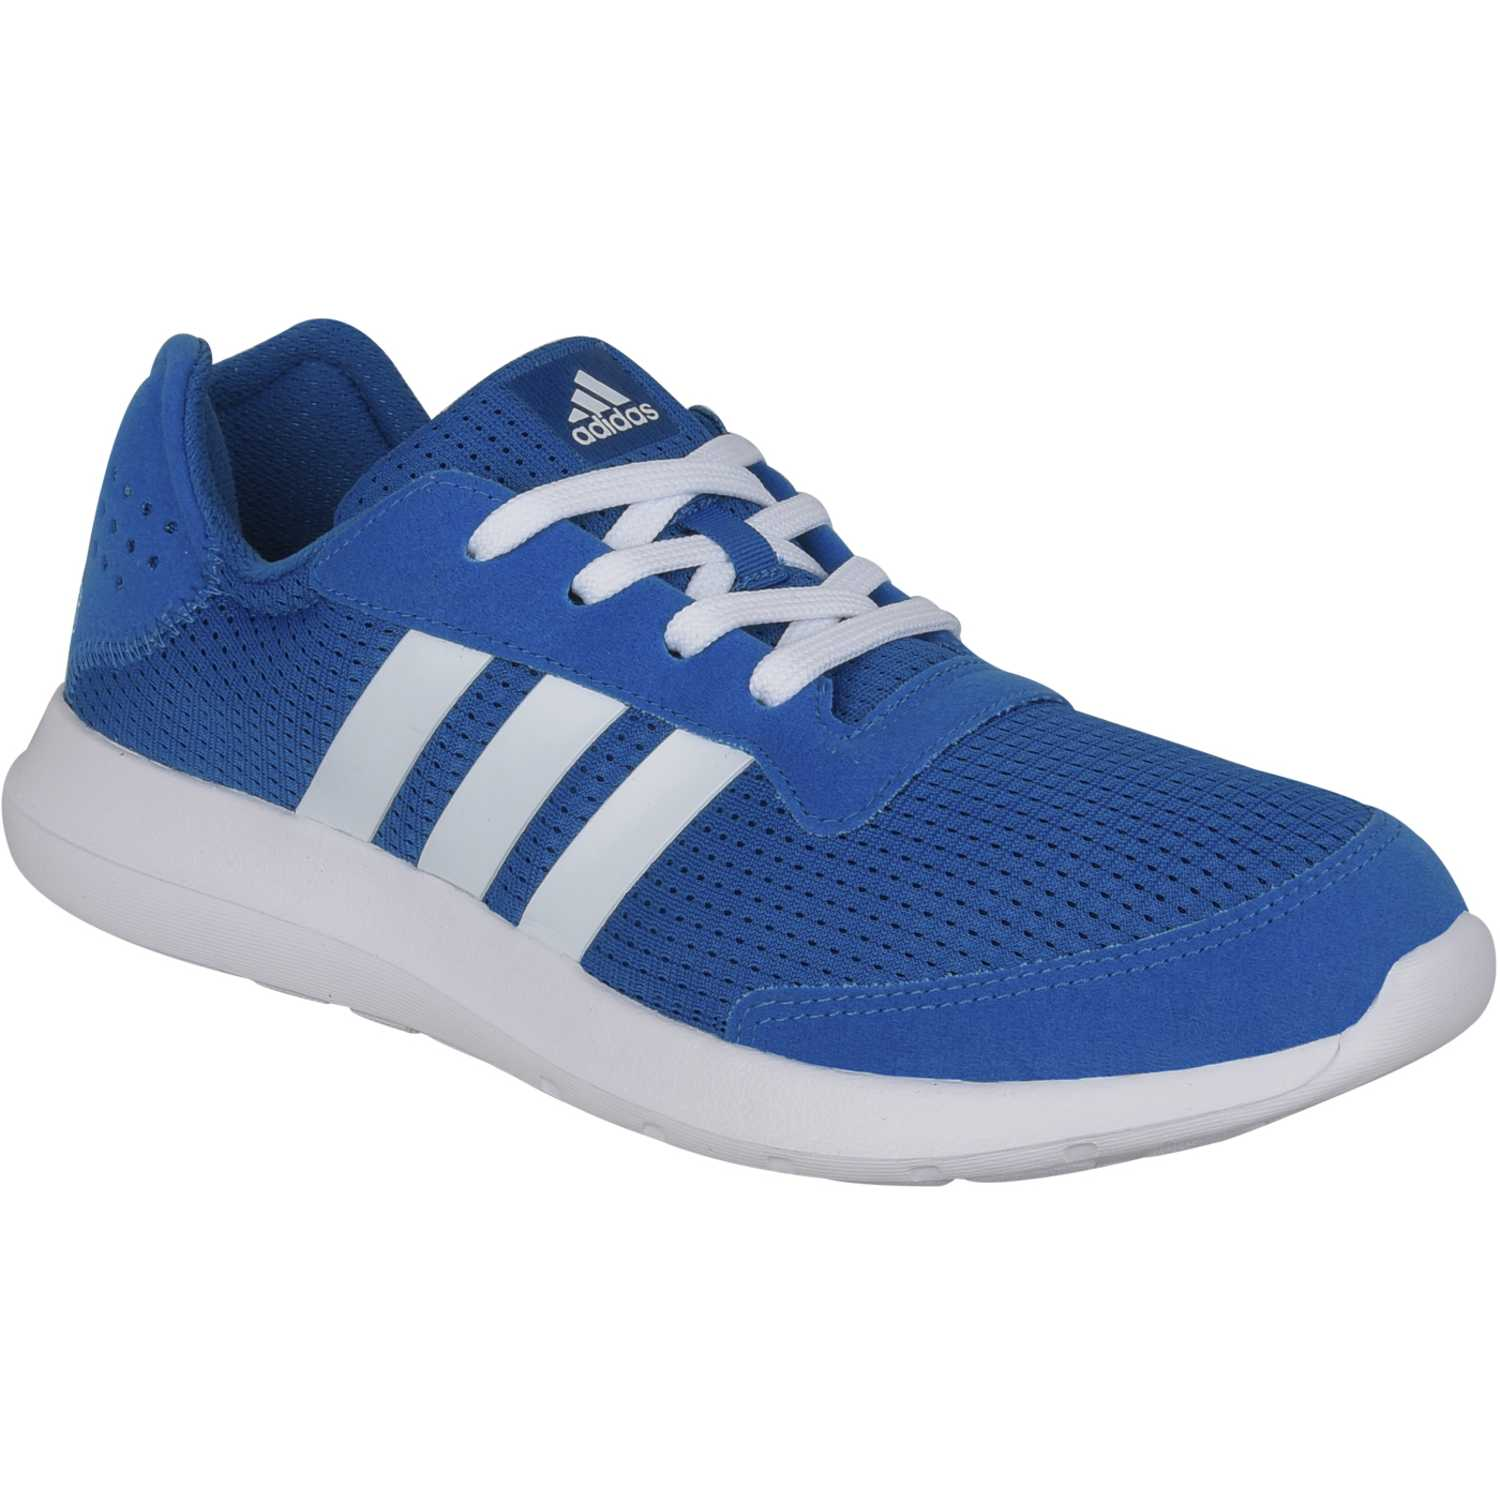 official photos 570f5 ffd5c Zapatilla de Hombre adidas Azulino   Blanco element refresh m